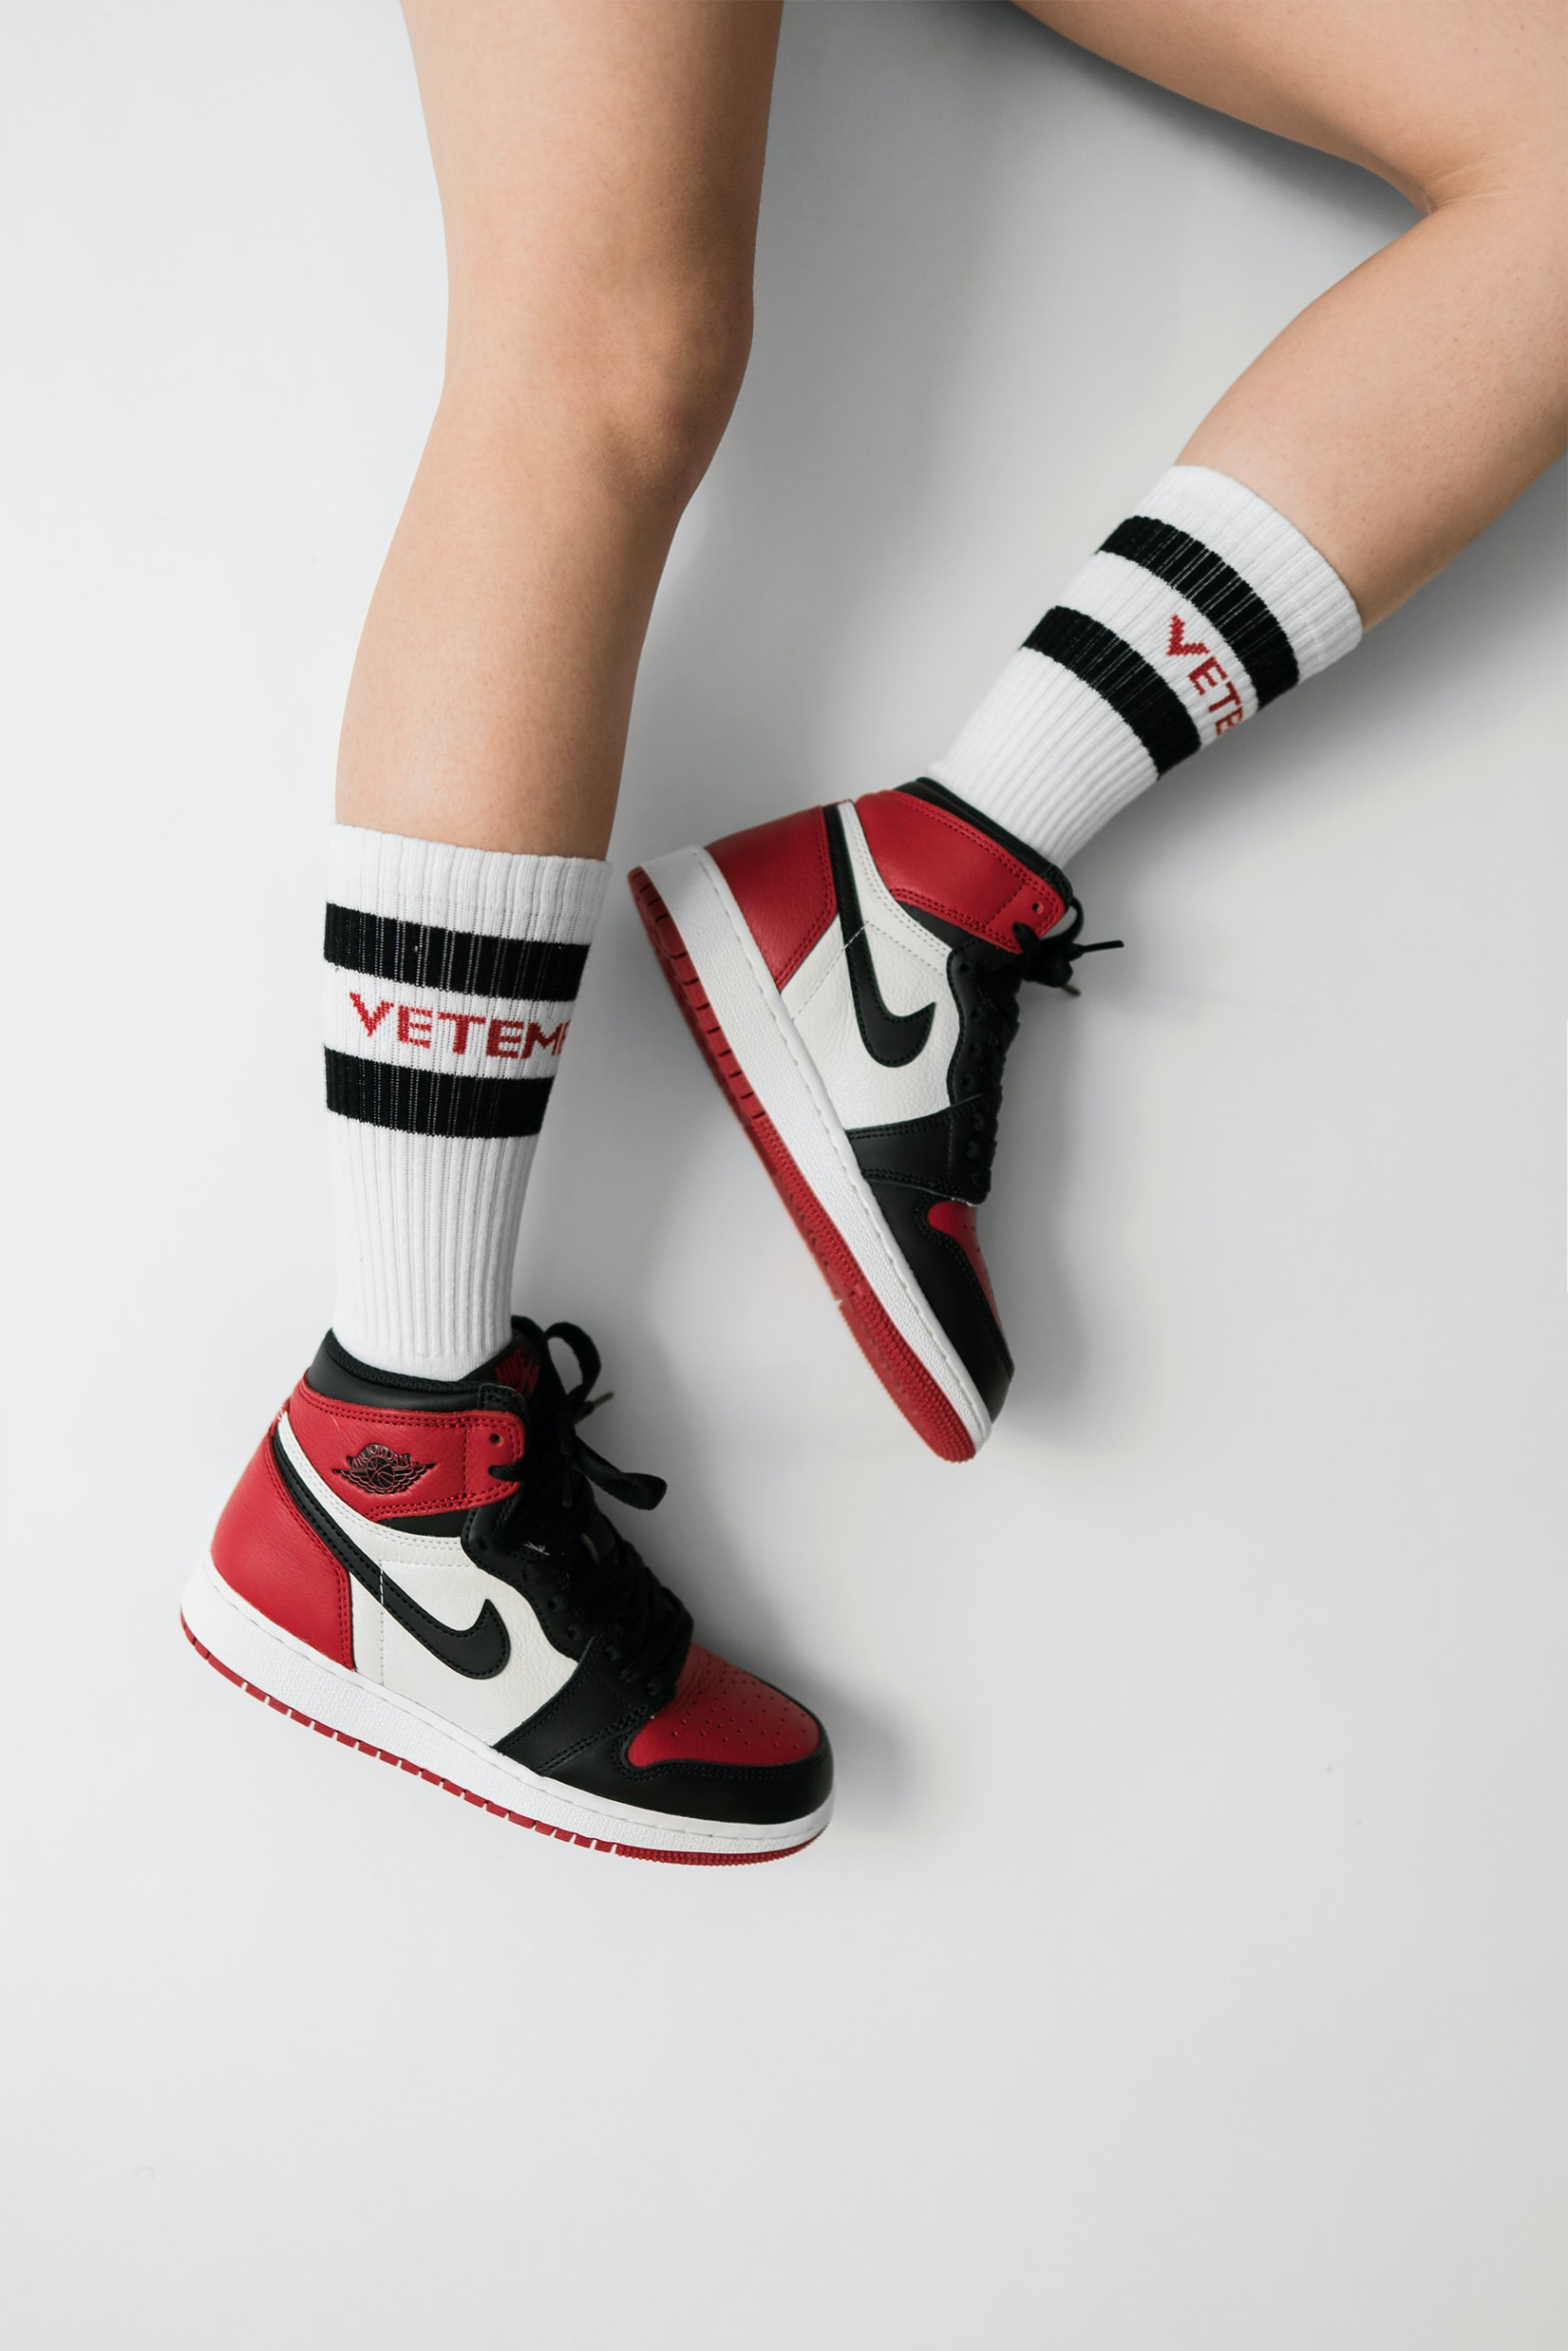 person wearing pair of black toe Air Jordan 1's